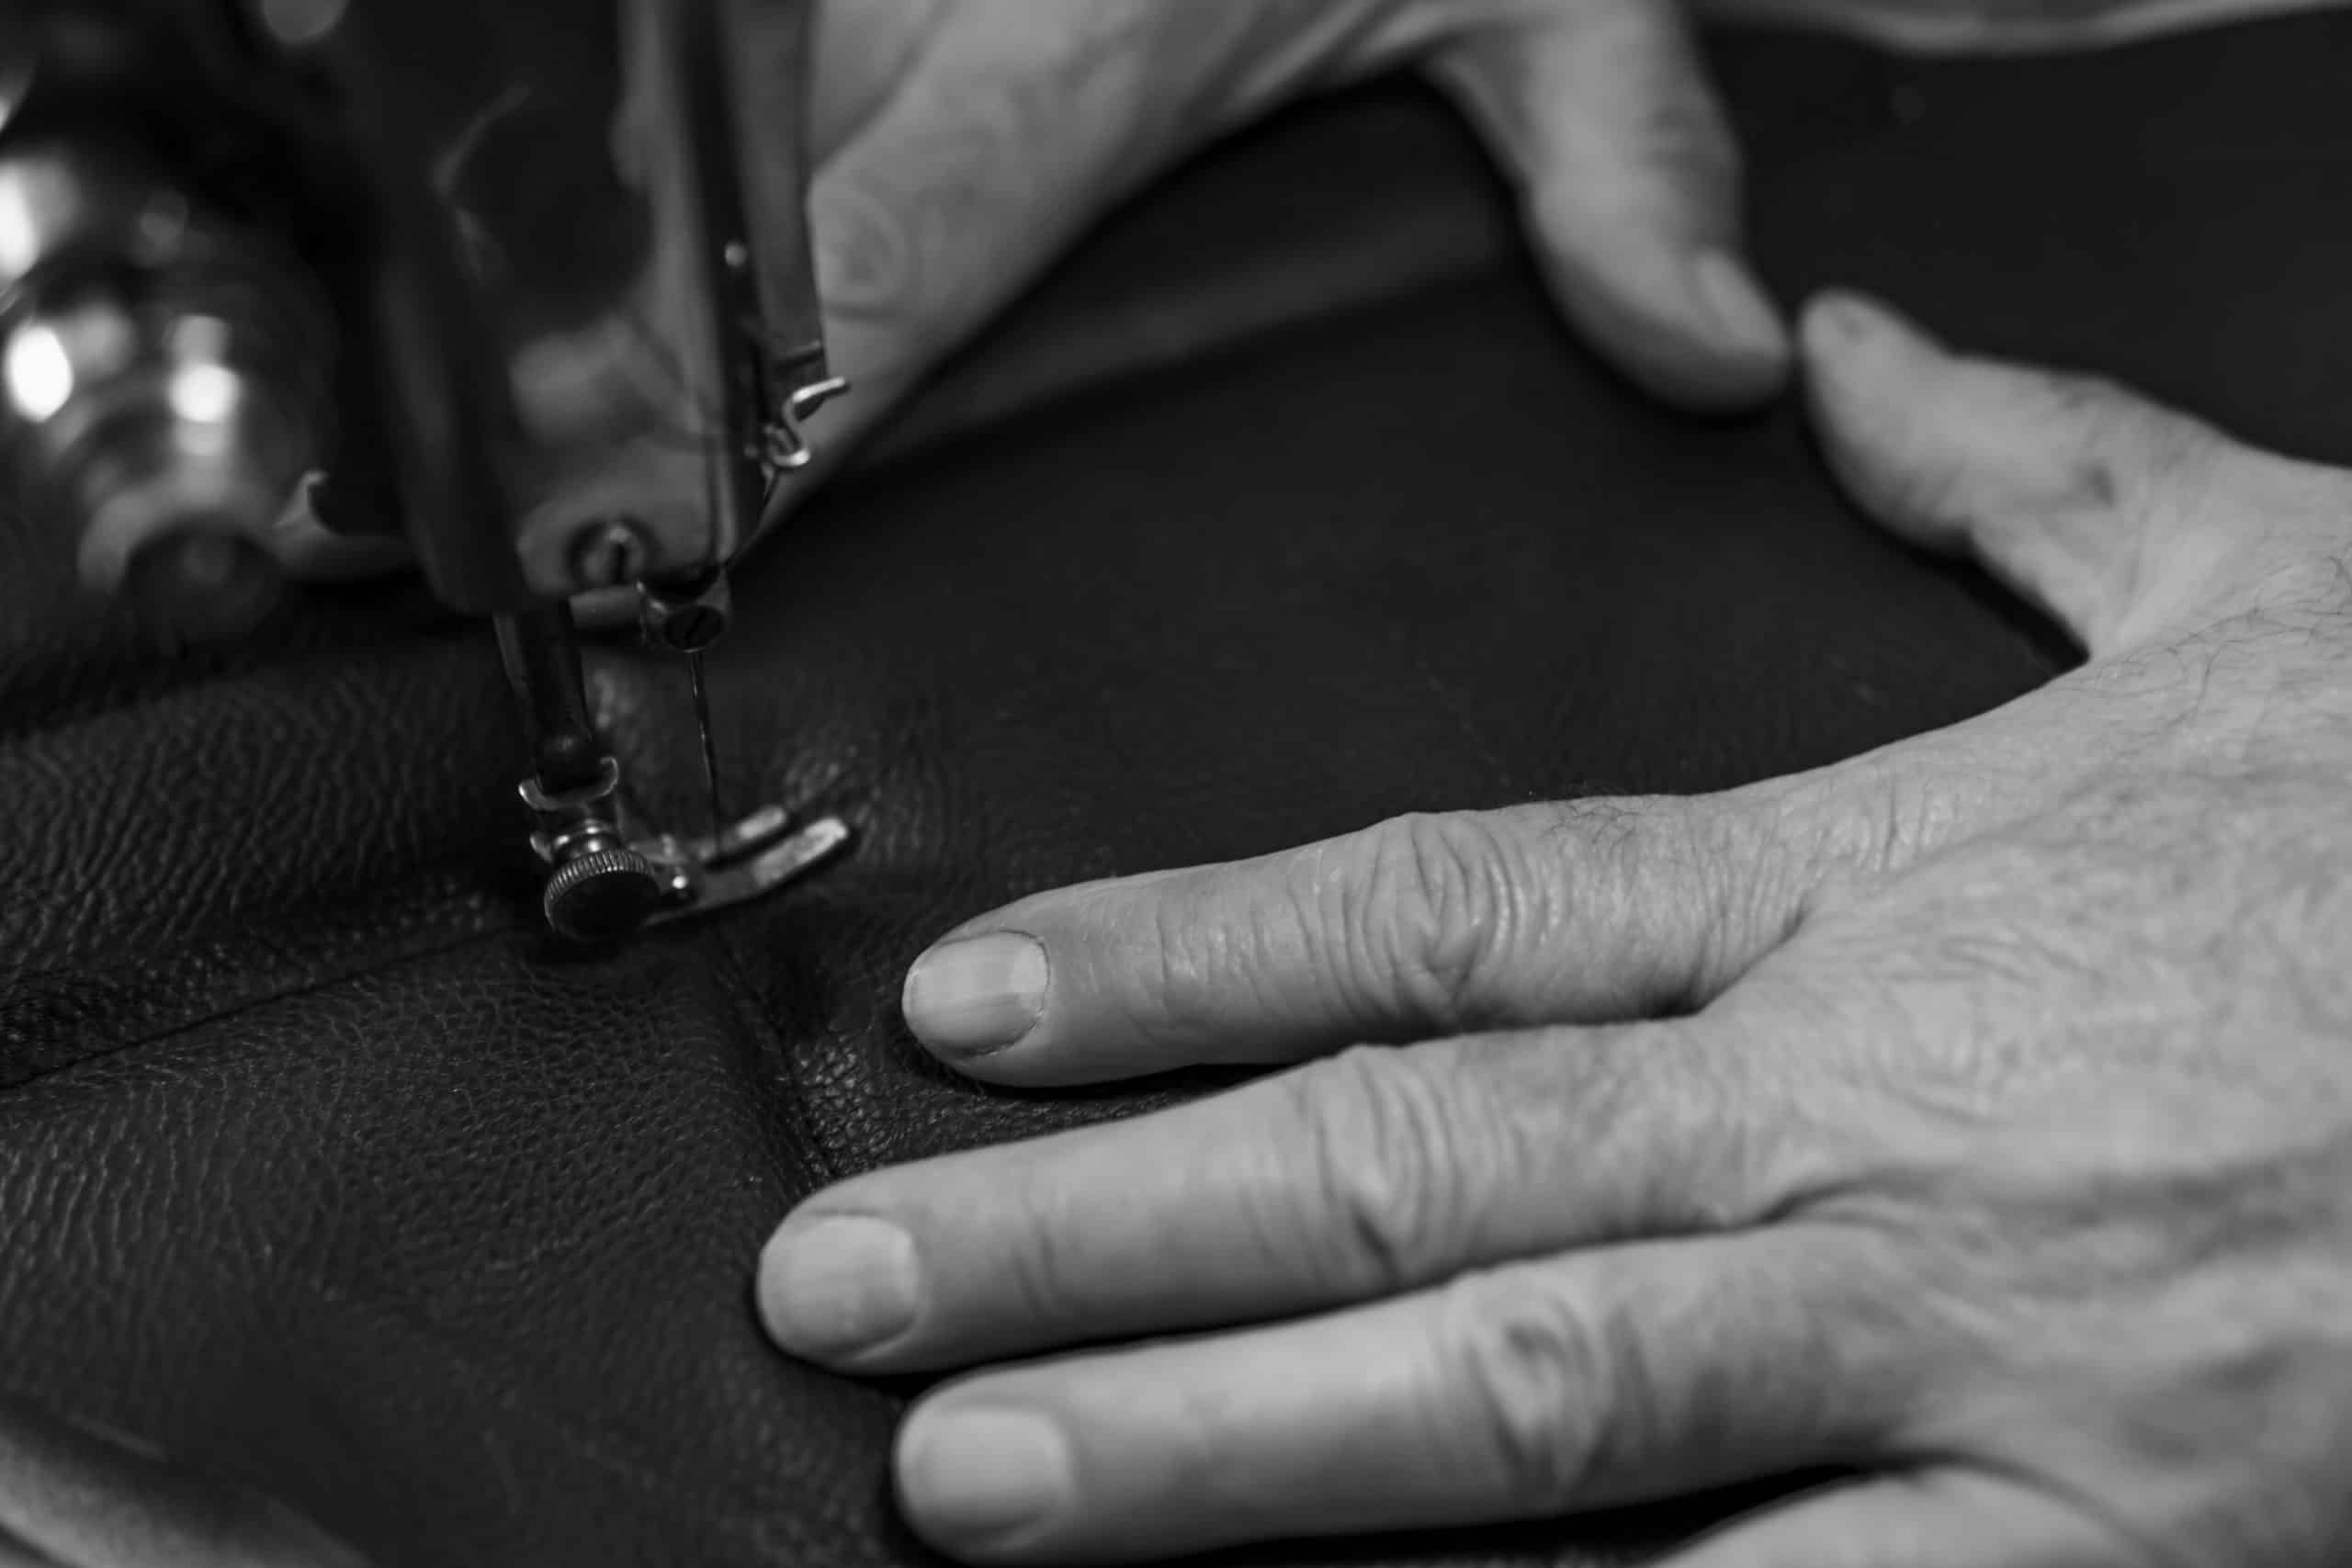 4 Key Factors to Consider When Choosing an Upholsterer